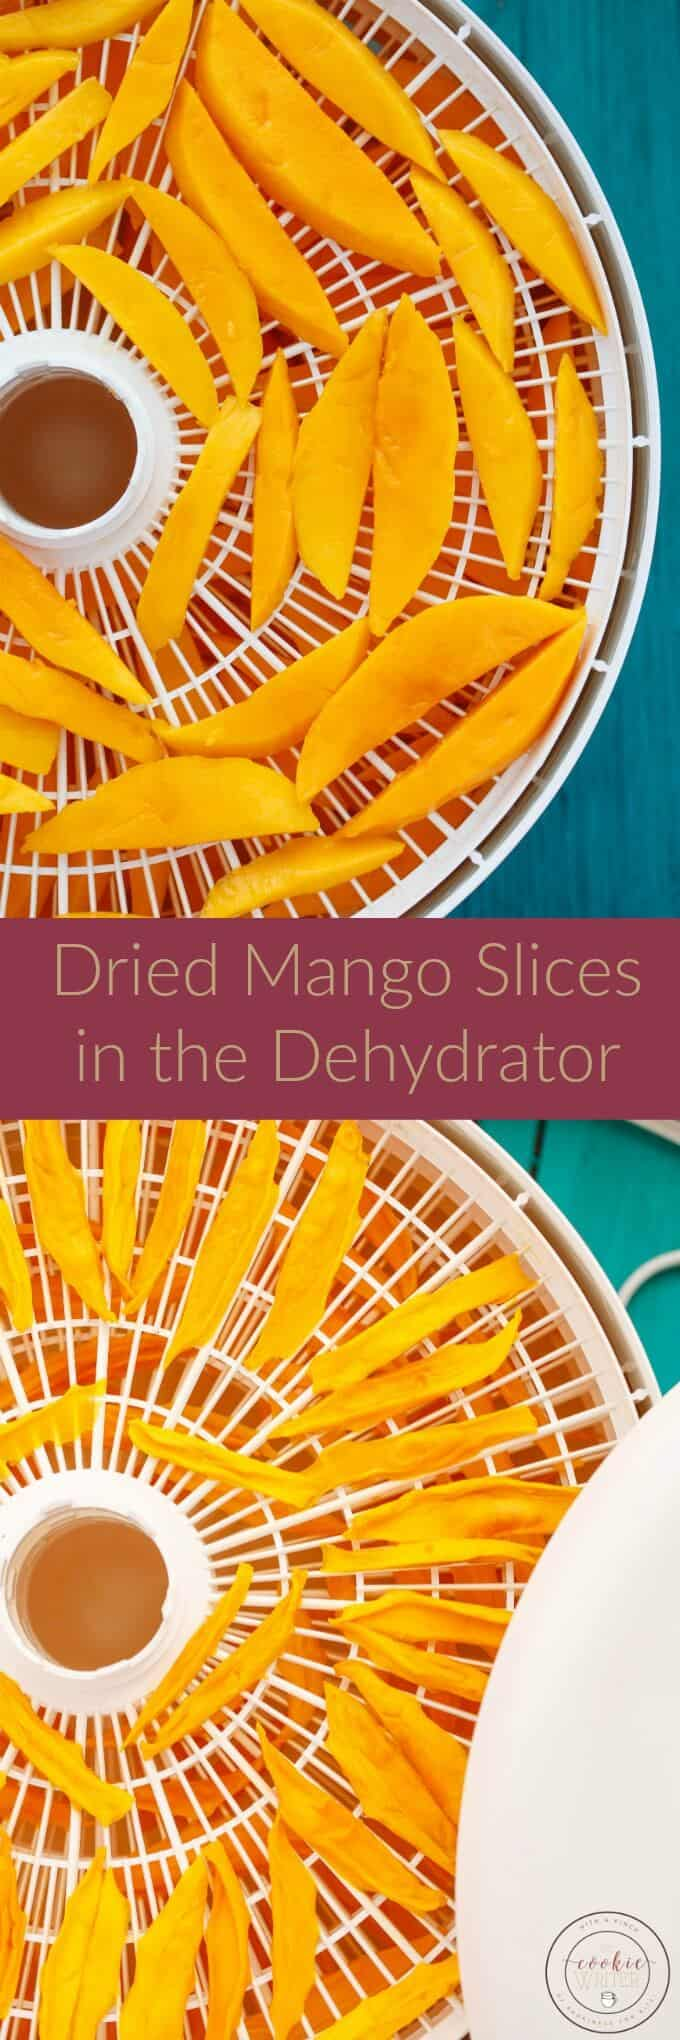 Dried Mango Slices in the Dehydrator